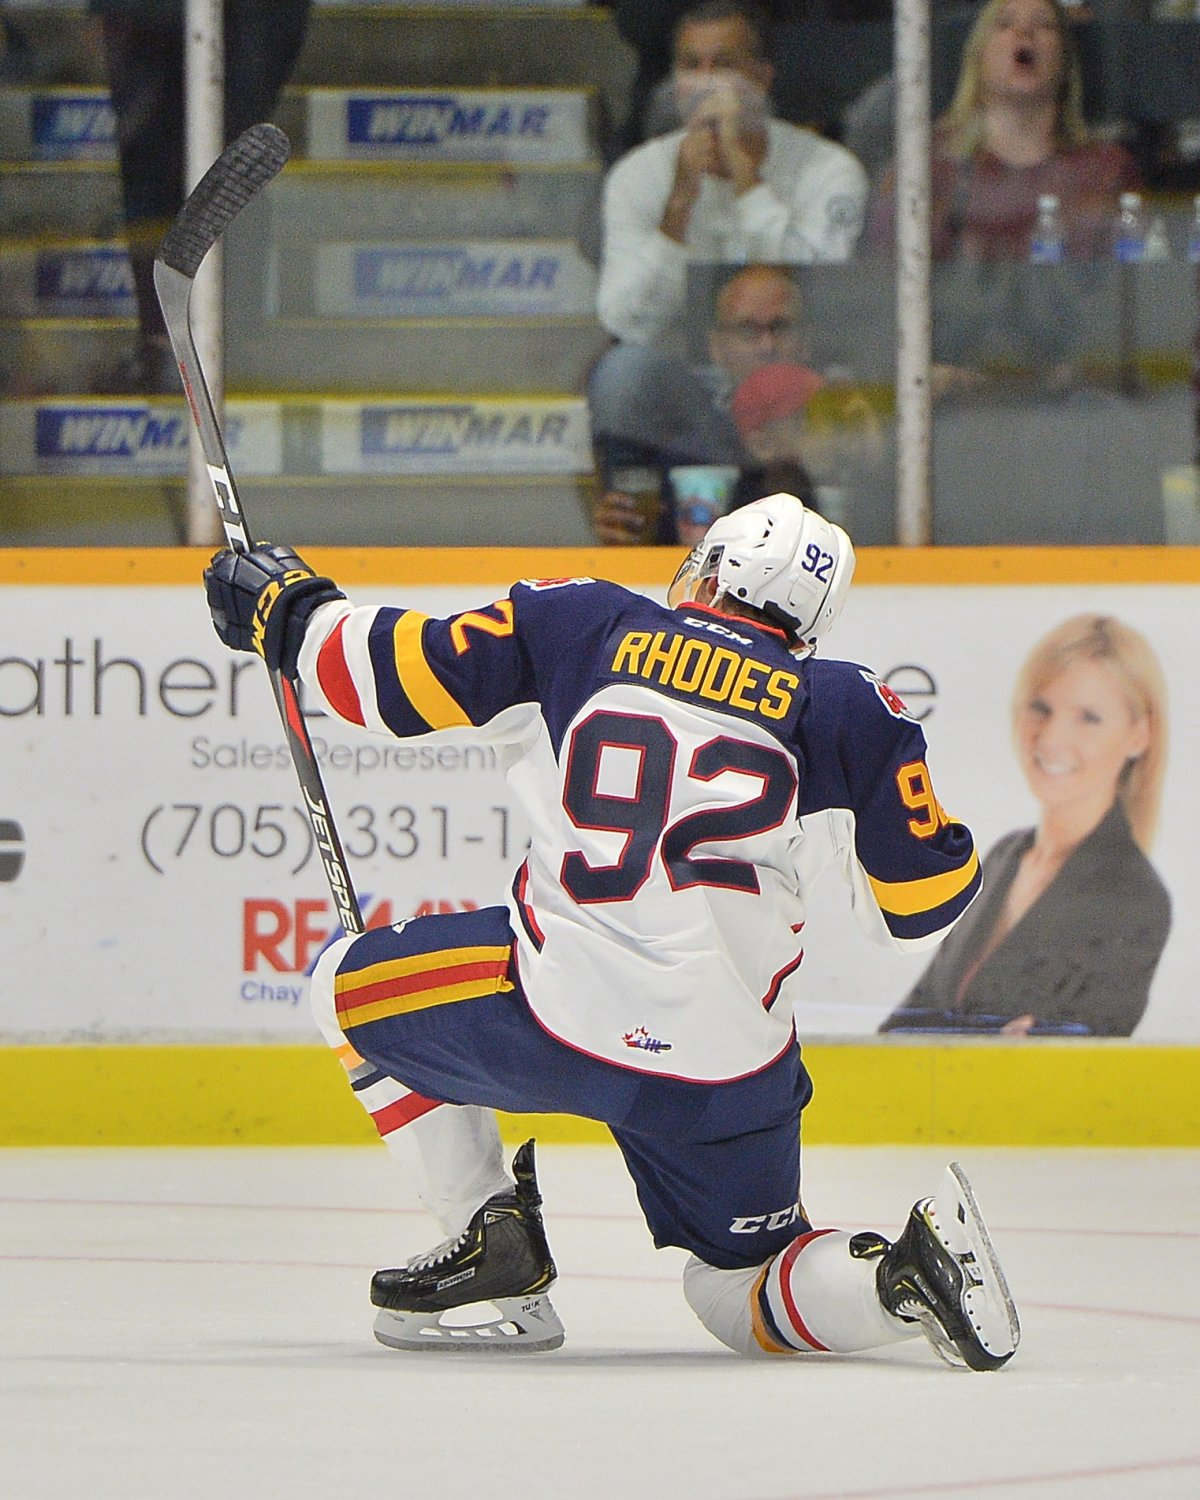 Sam Rhodes of the Barrie Colts.